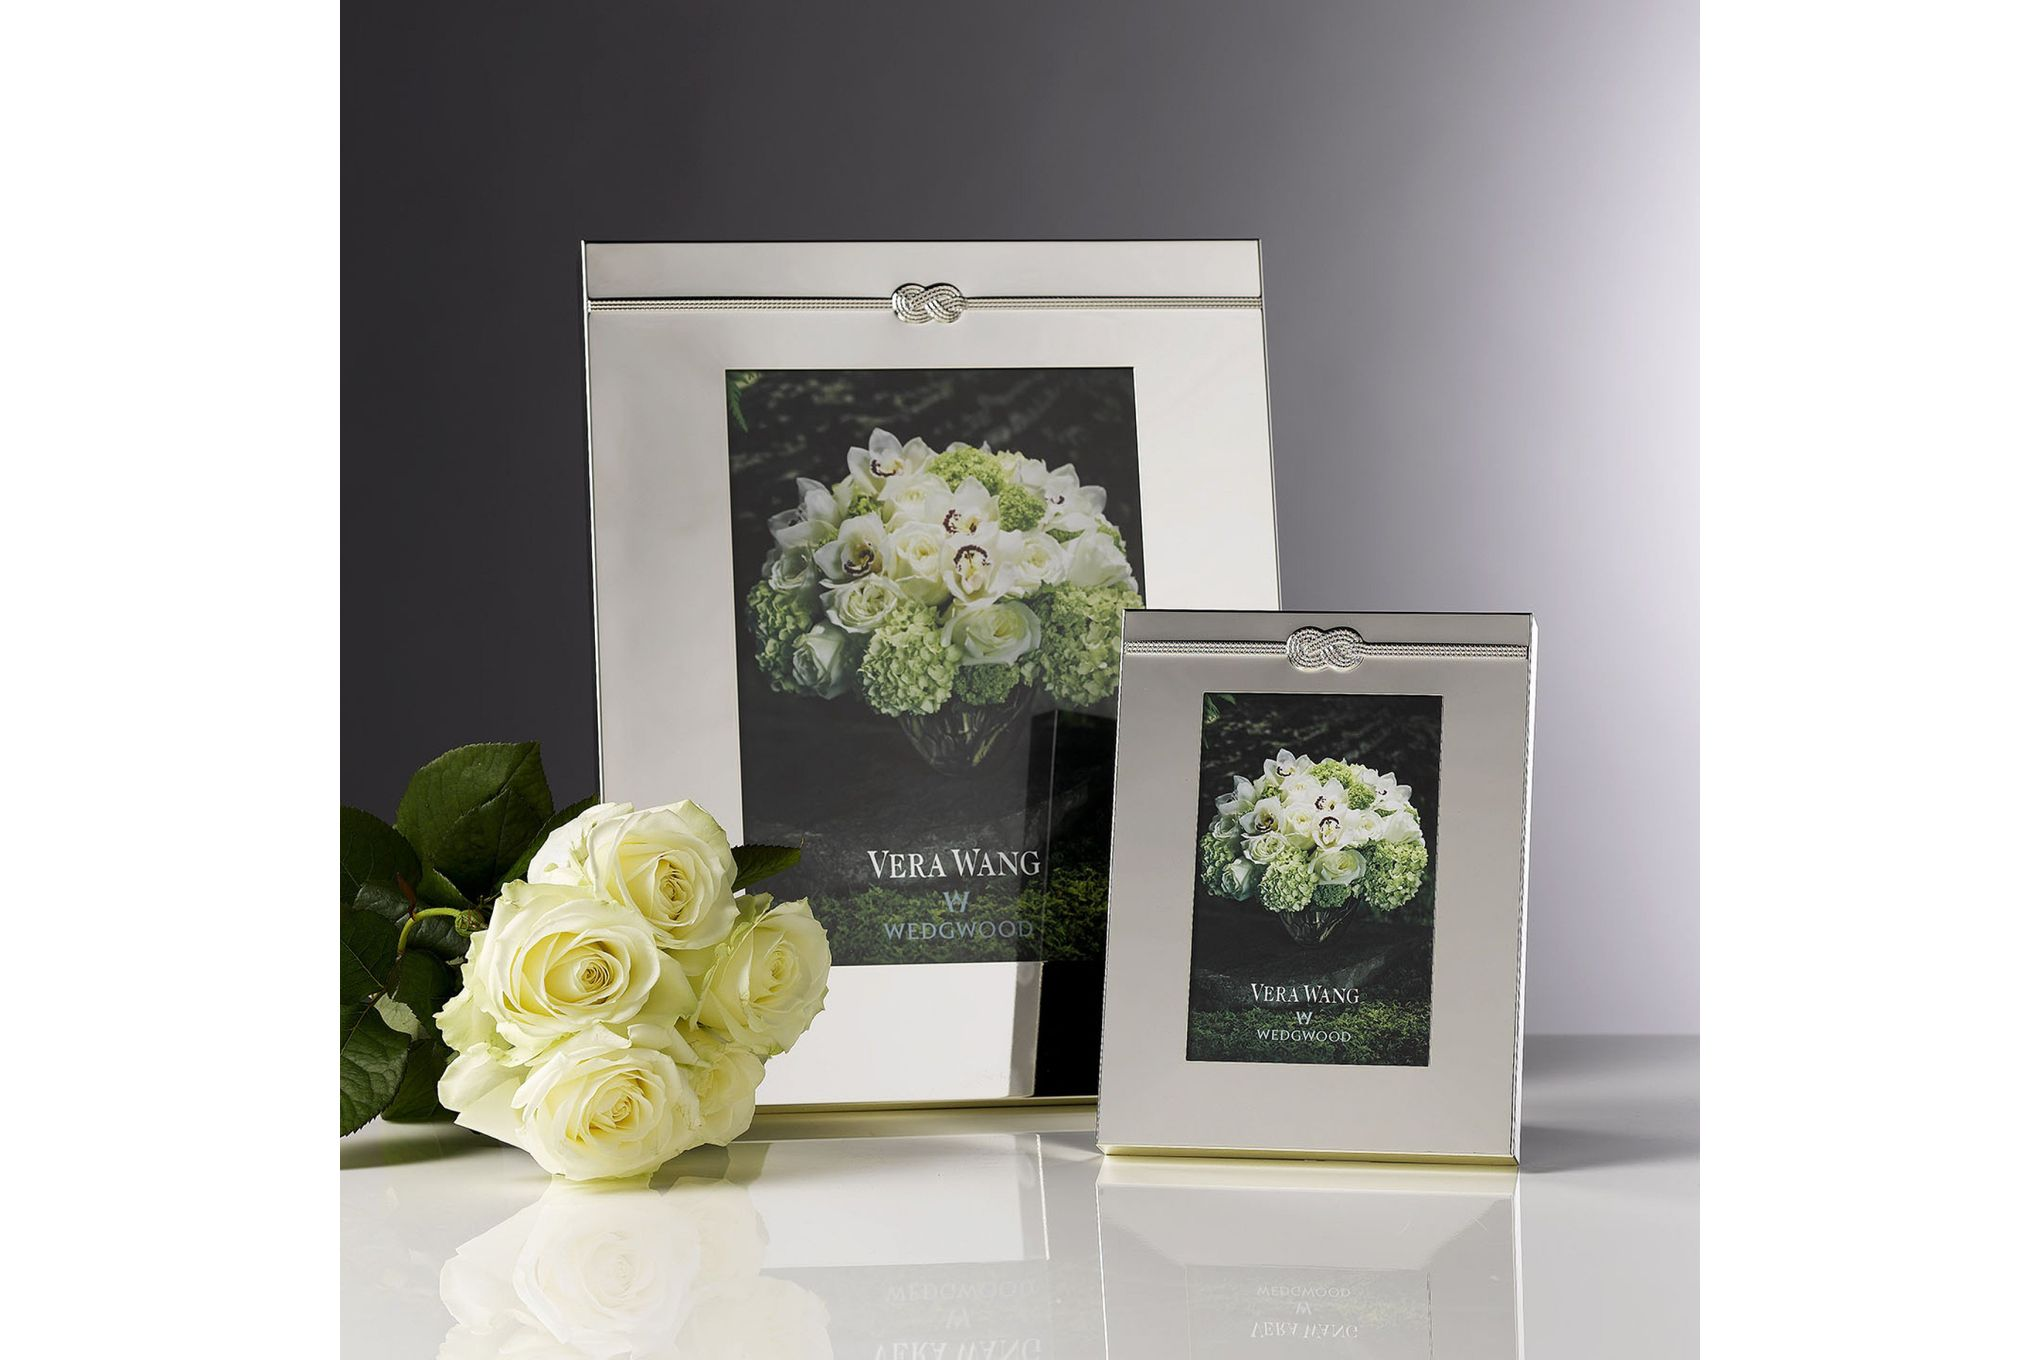 """Vera Wang for Wedgwood Gifts & Accessories Photo Frame Infinity 4 x 6"""" thumb 3"""